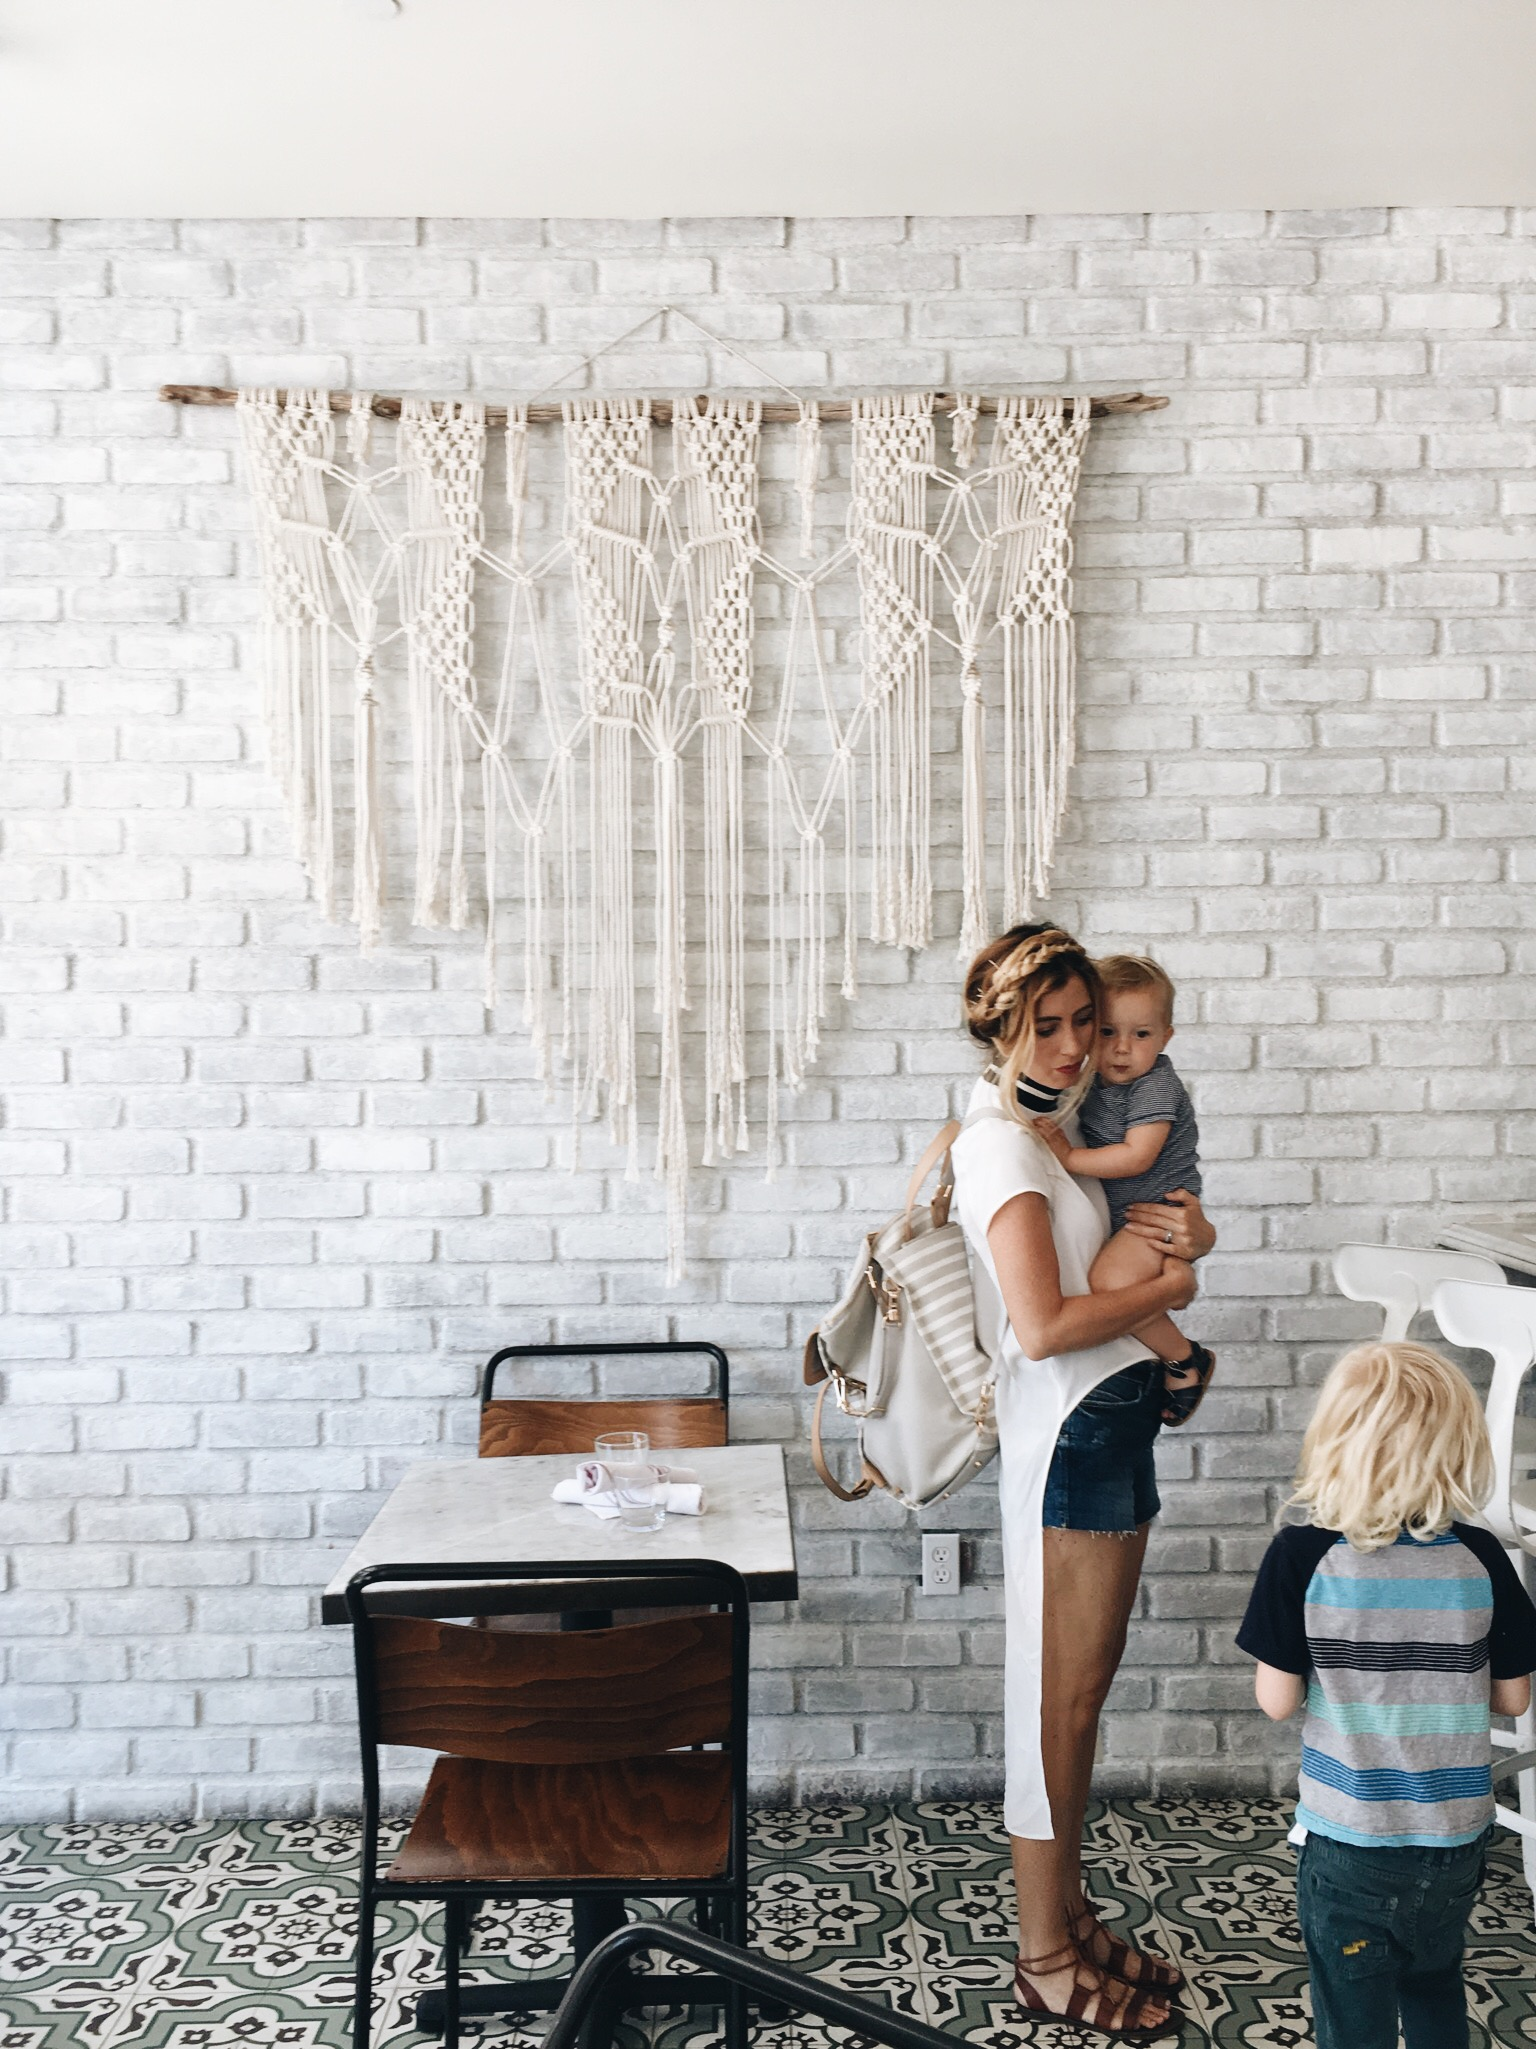 tips for successful outings and travel with kids